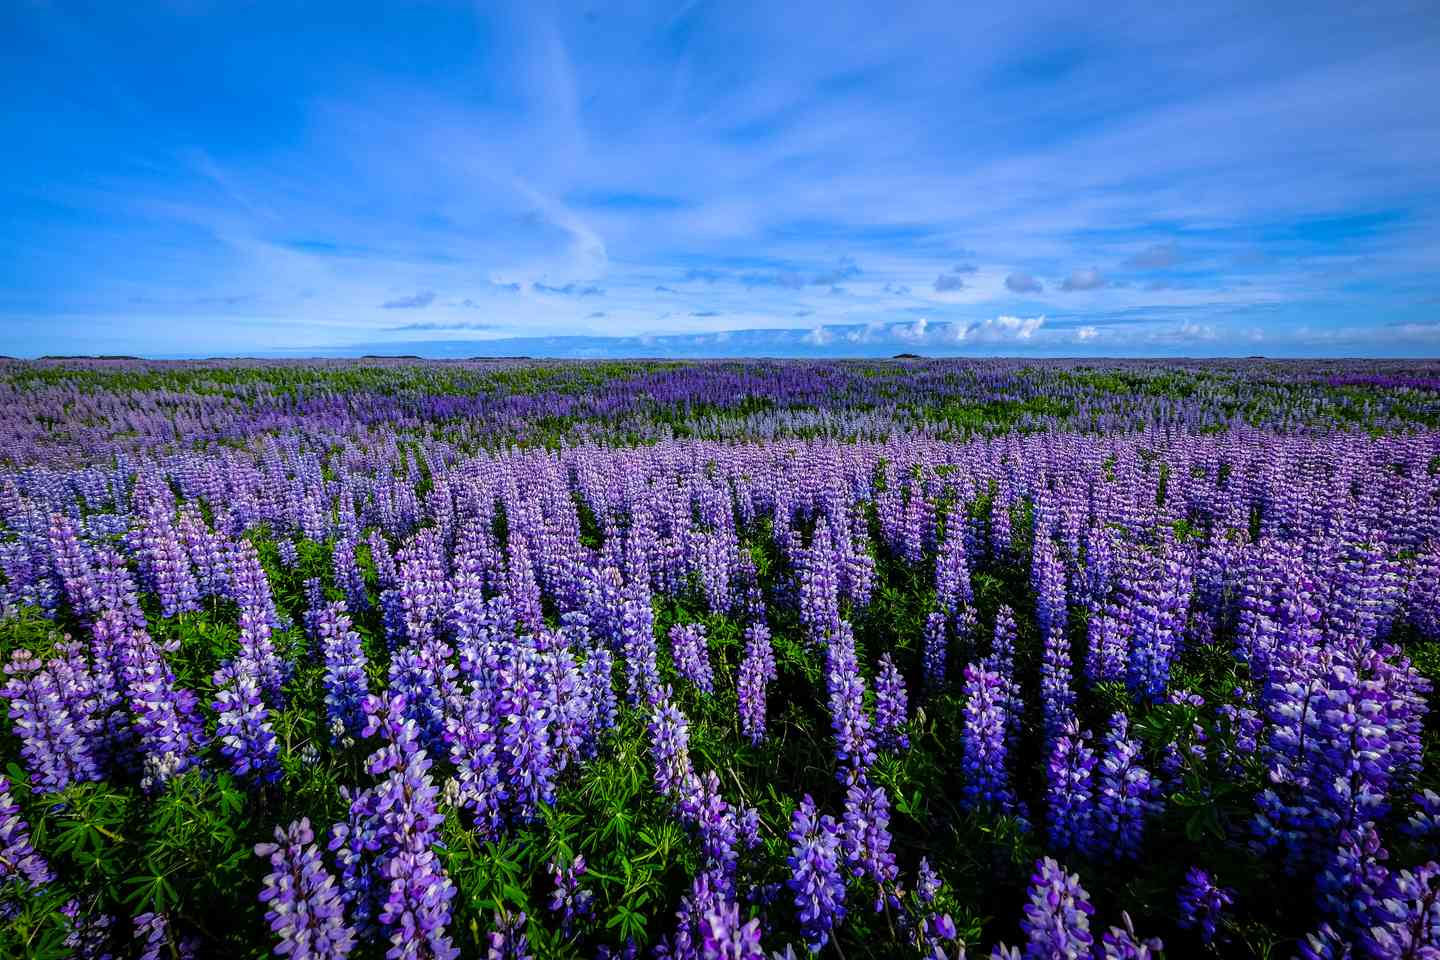 Blue sky with rolling fields of purple and blue flowers